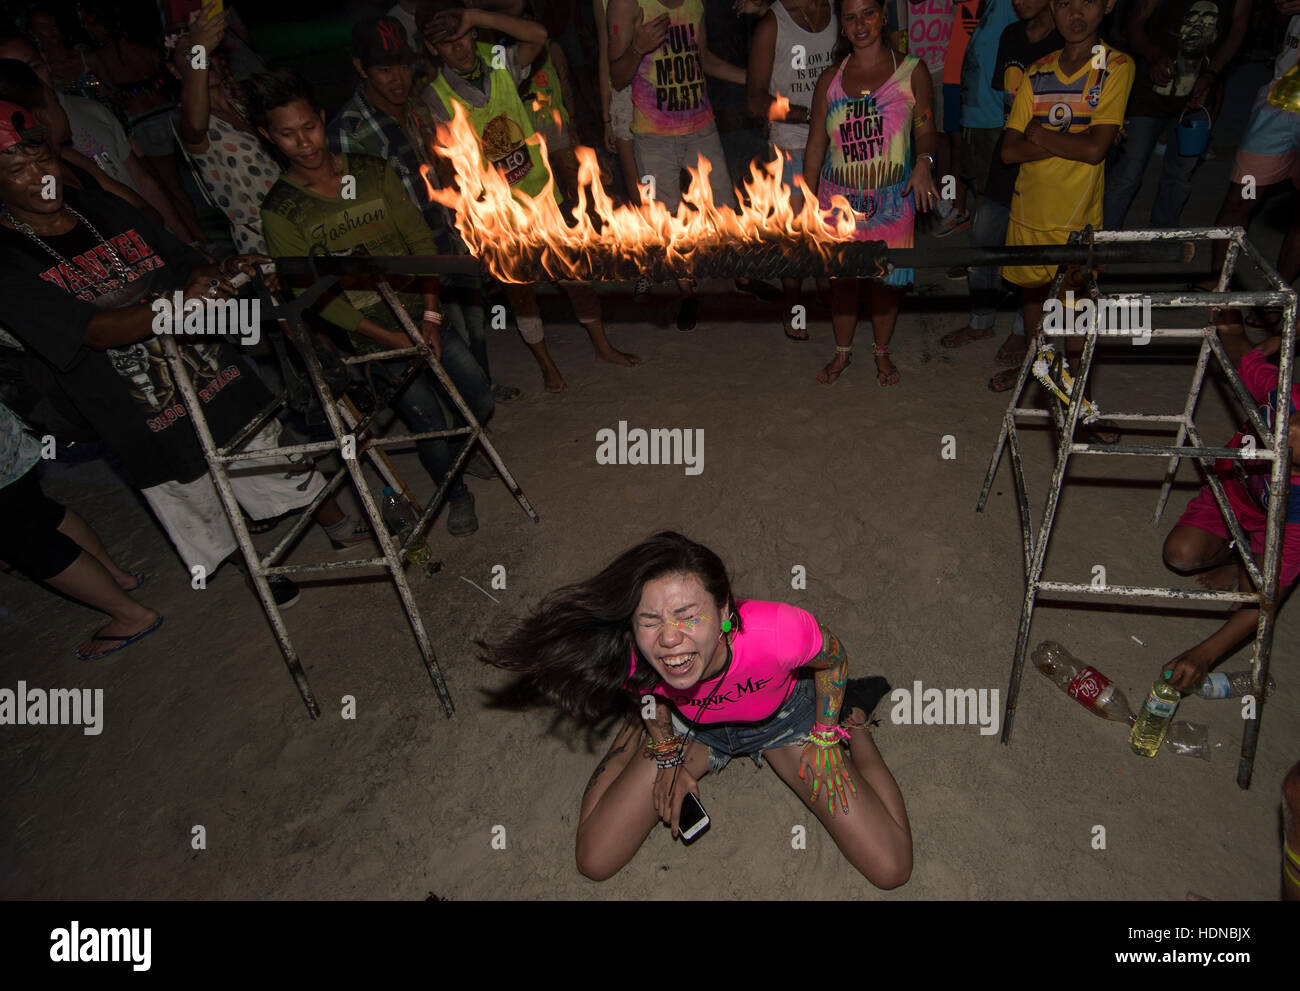 A party goer joins in a limbo dance under a burning pole at a  Full Moon party on Sunrise beach Haad Rin on the - Stock Image